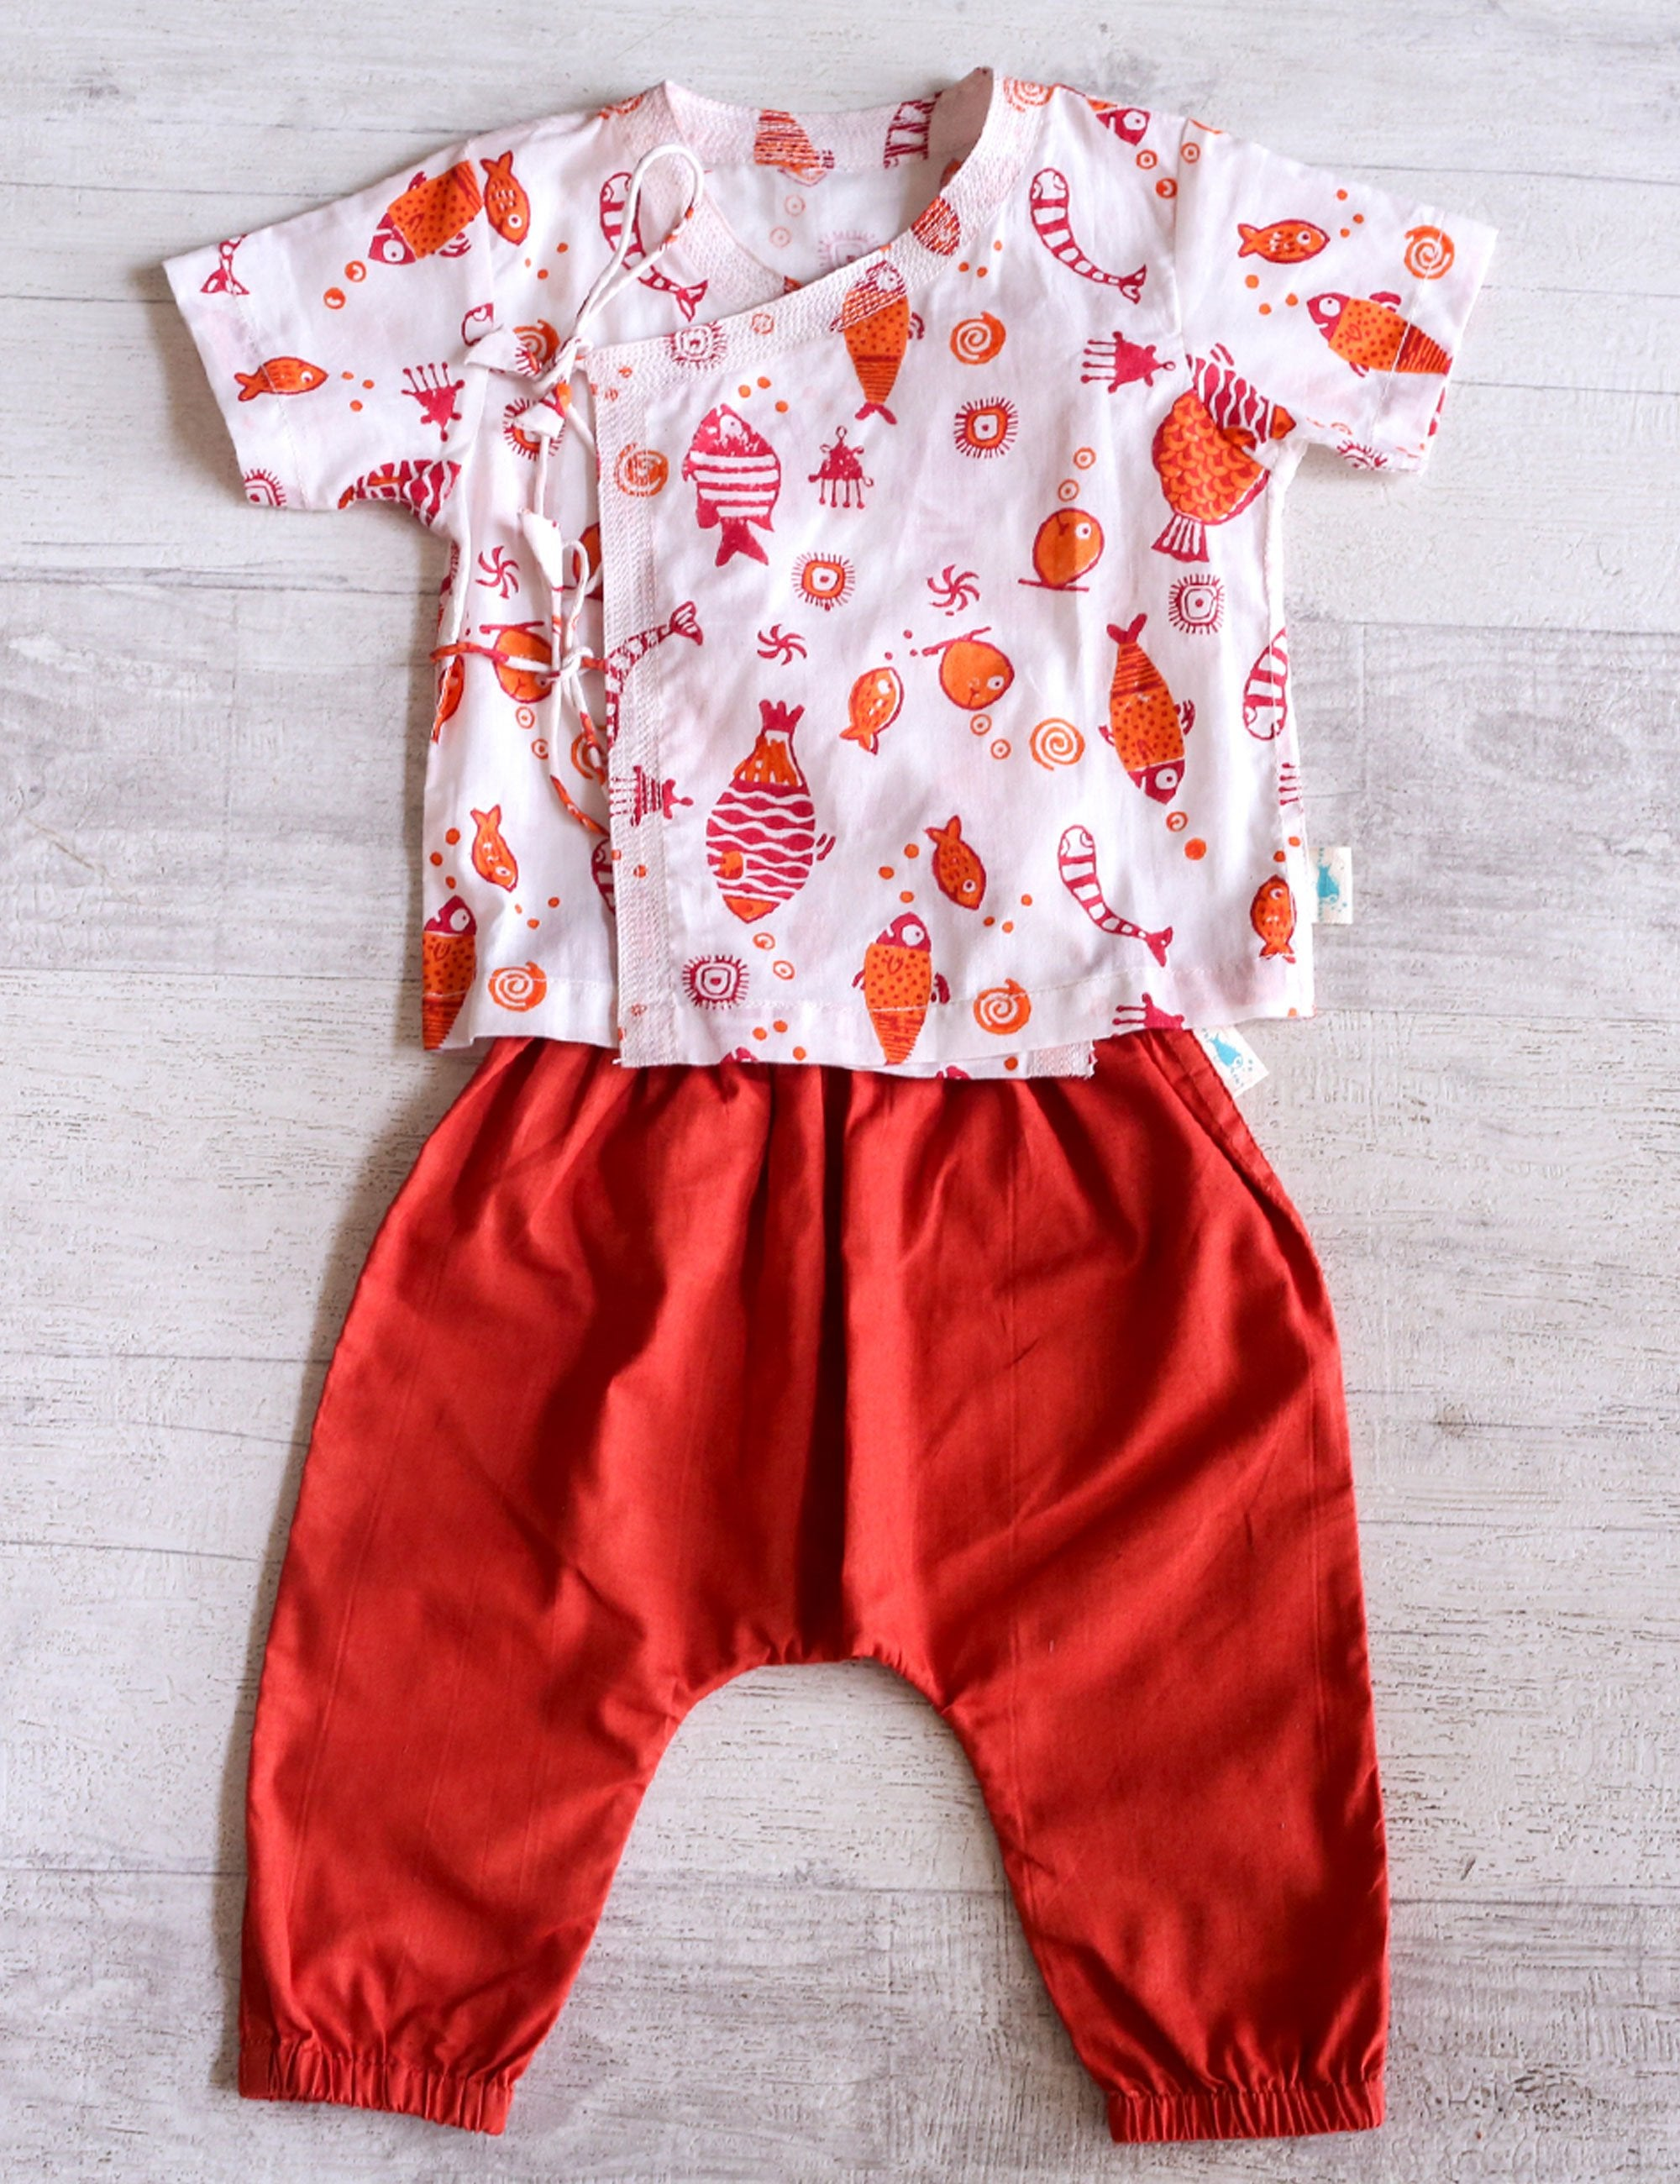 Fish Print Top with Pajama In White and Red Colour for Girls and Boys